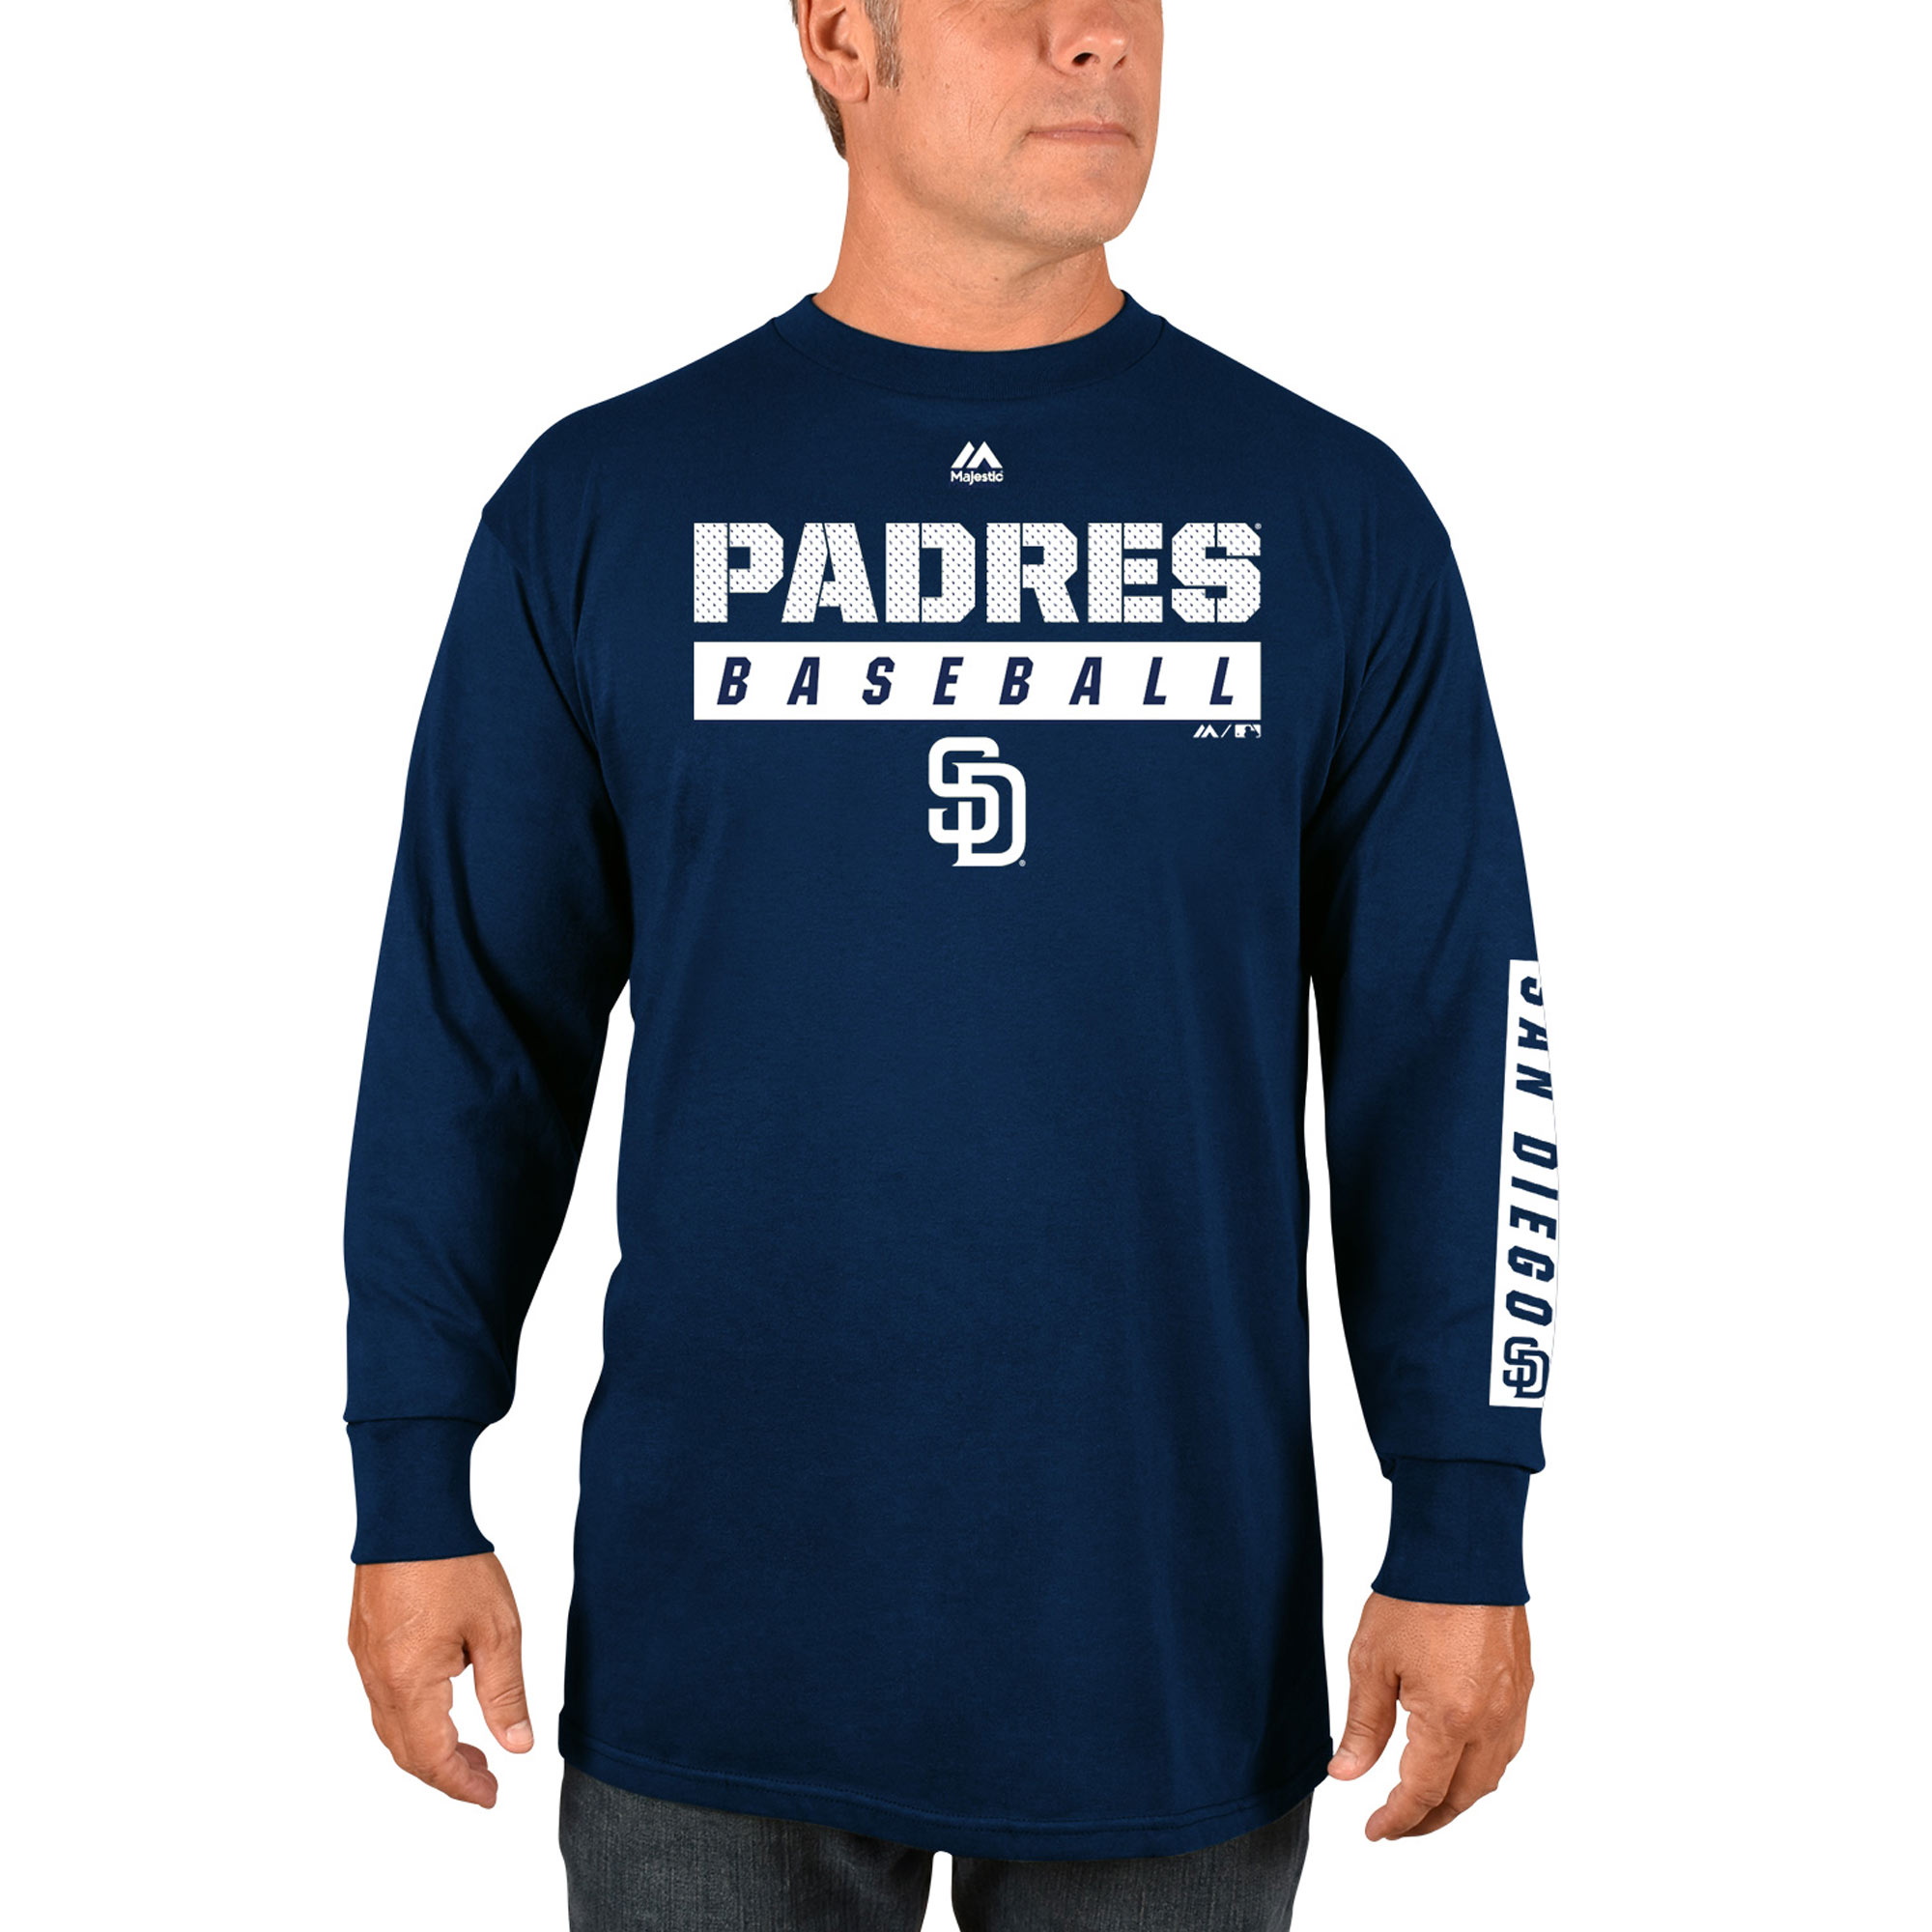 San Diego Padres Majestic Proven Pastime Long Sleeve T-Shirt - Navy